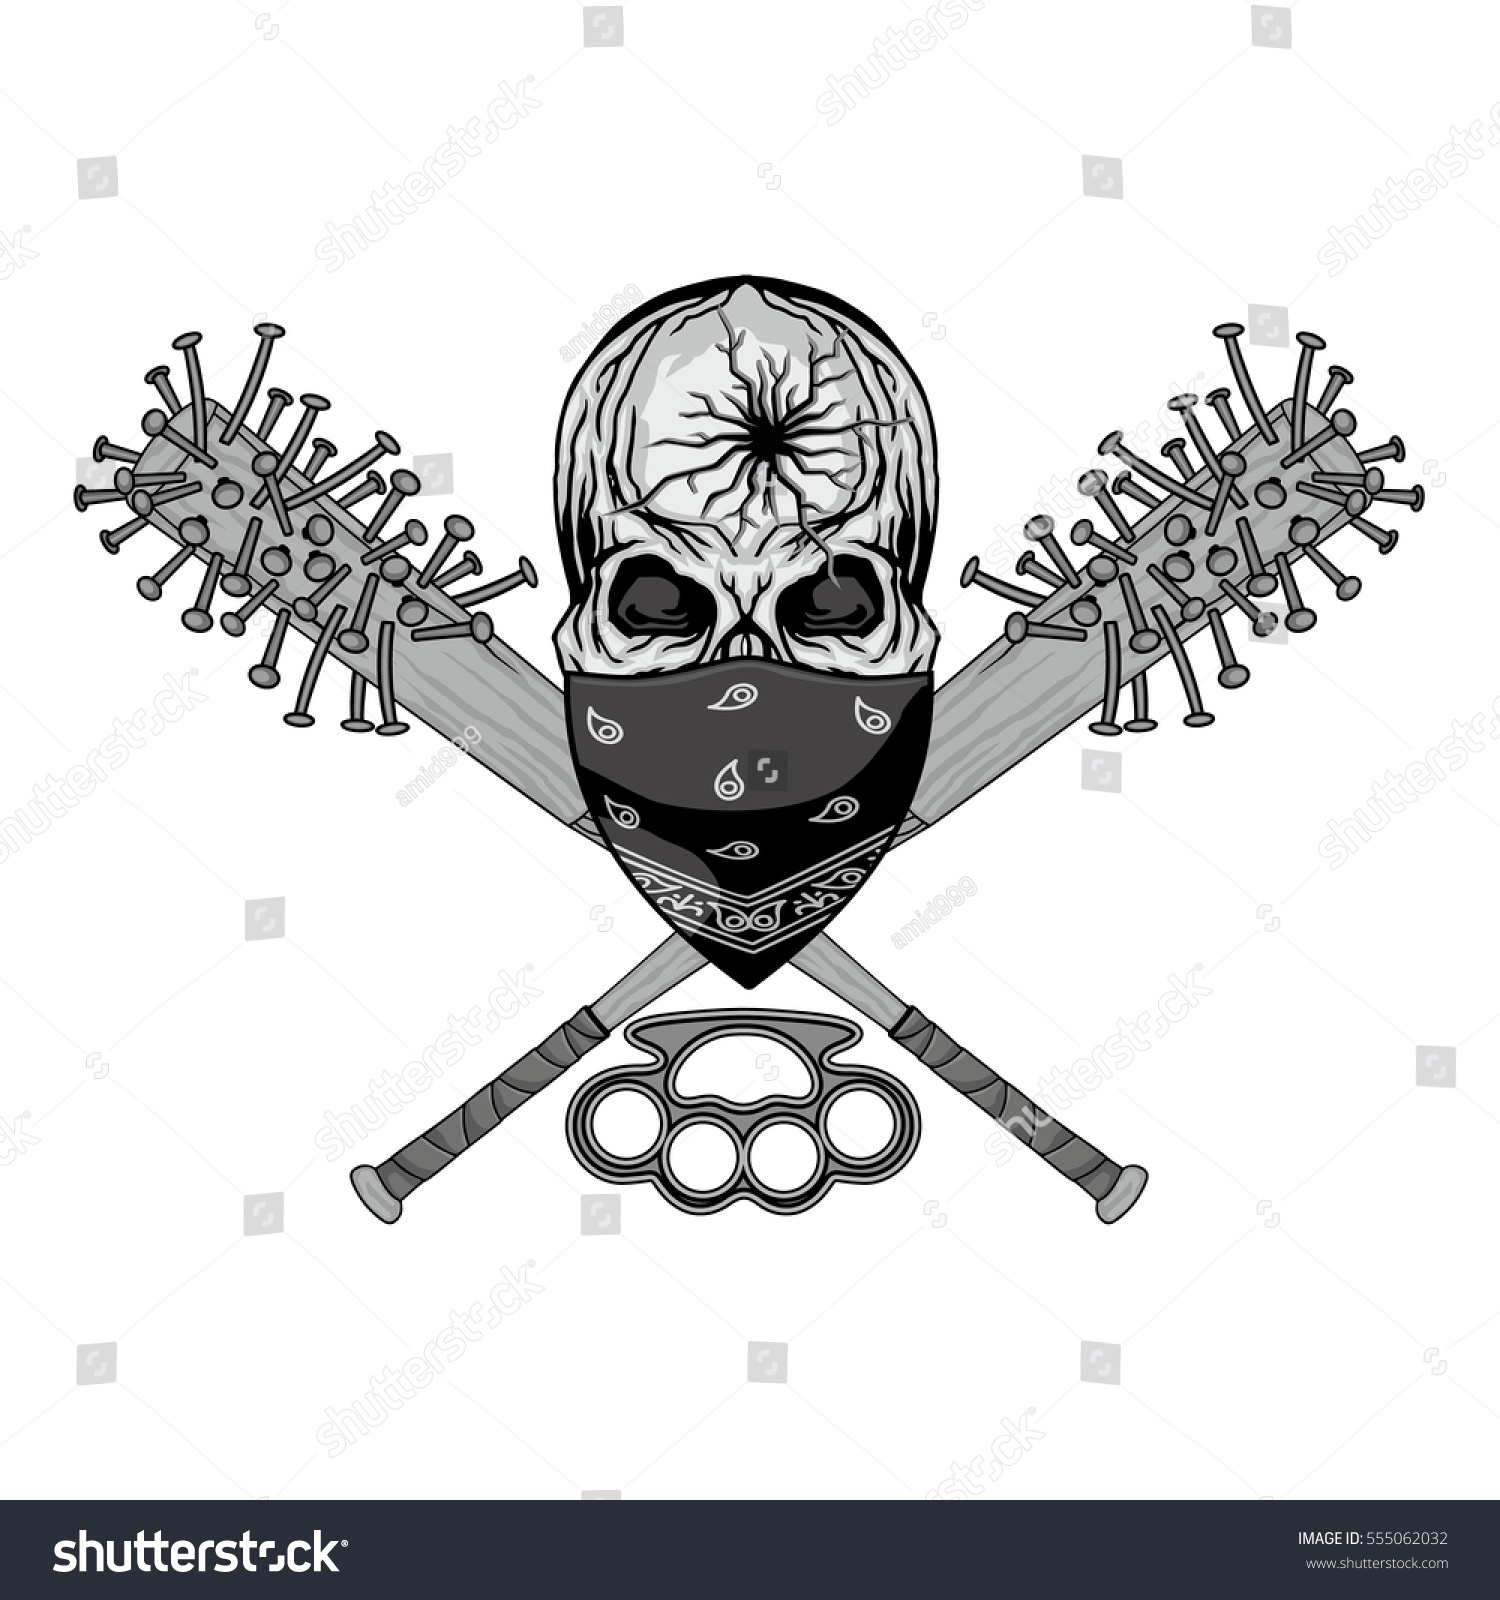 Barbed Wire Baseball Bat Sketch Center Amplifier Ocl 80w Hifi By Ic Tda2020 Electronic Projects Circuits Military Coat Arms Skull Stock Vector Royalty Free Rh Shutterstock Com